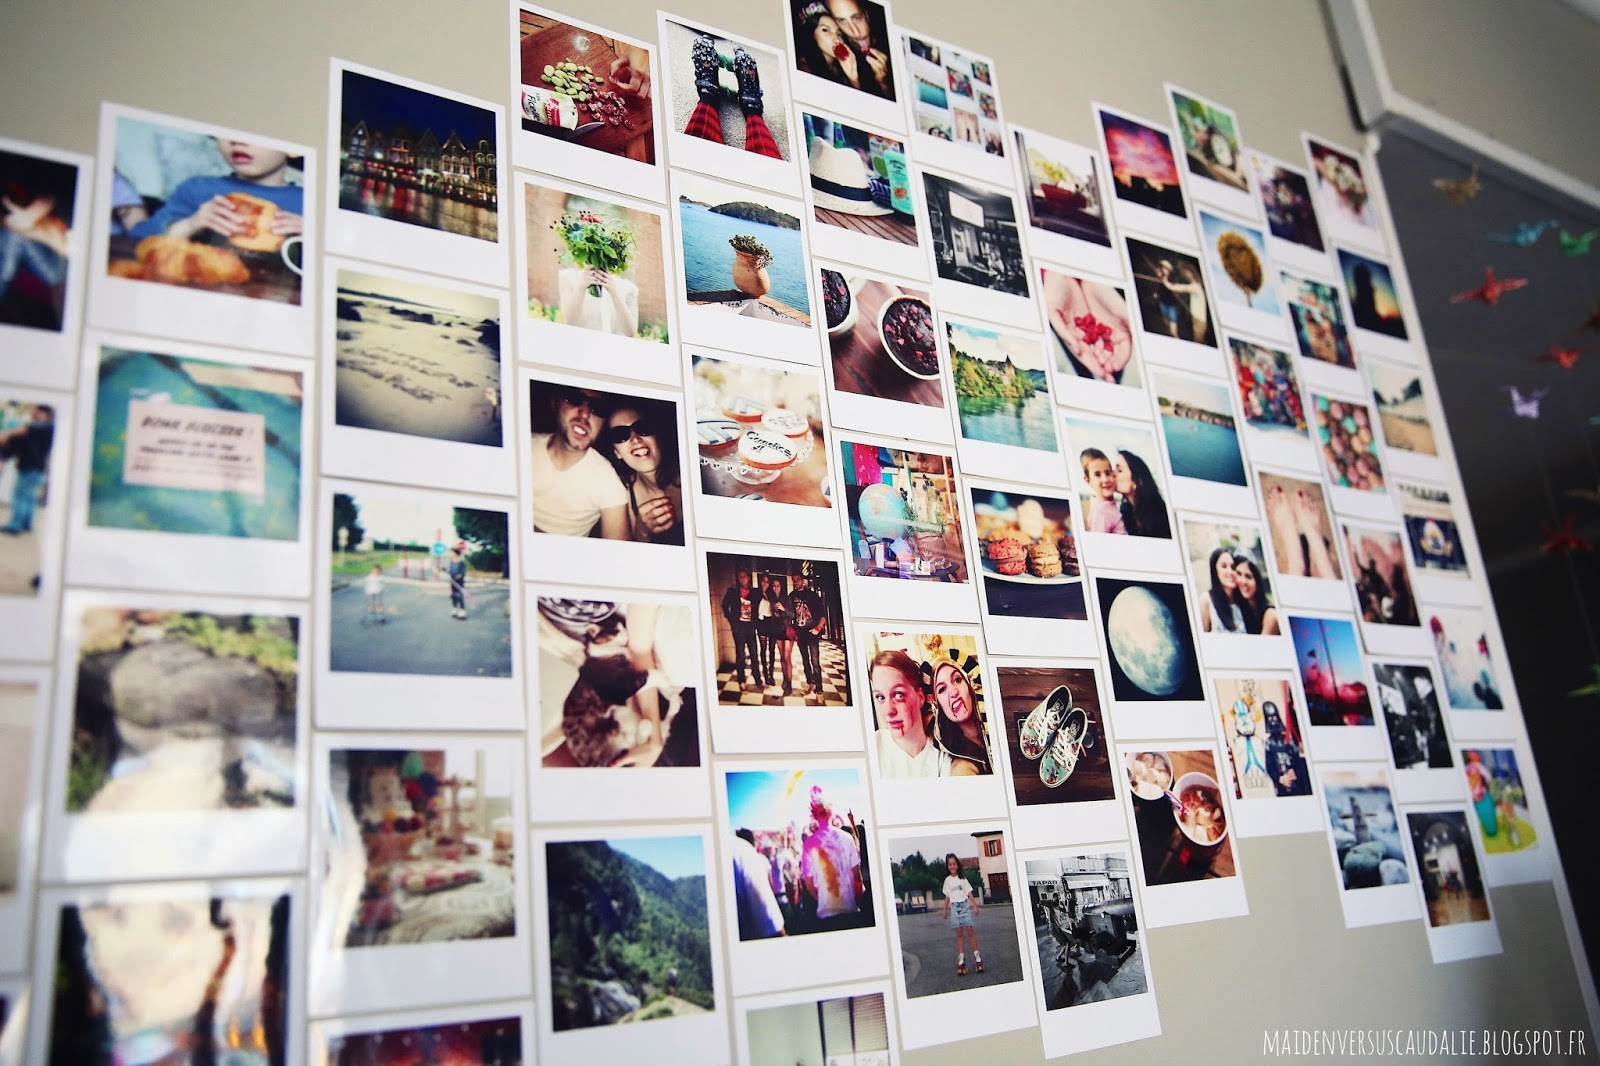 Fantastic Mur Photo Polaroid AmpBB52 HumaTraffin